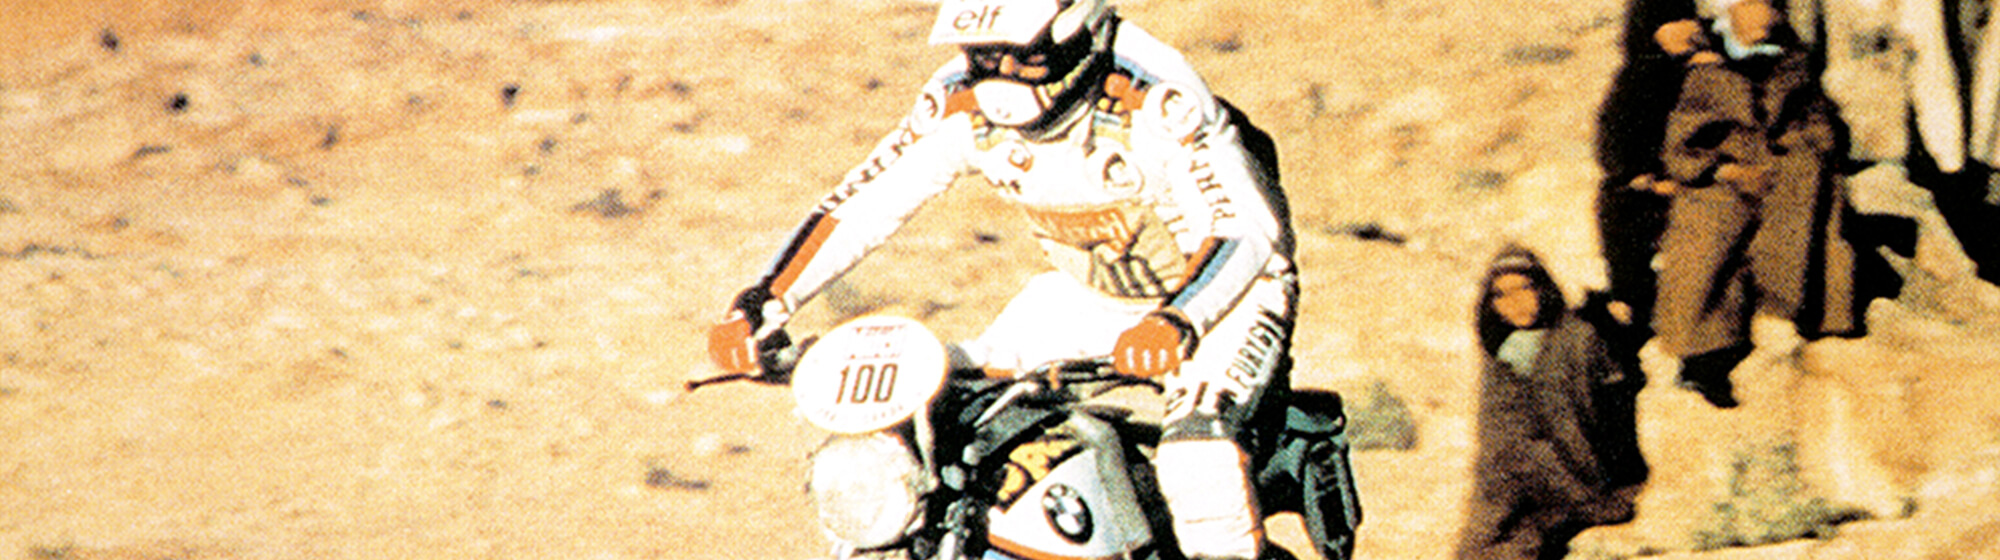 Paris-Dakar rally 1981: the first BMW GS 800 airheads at the start